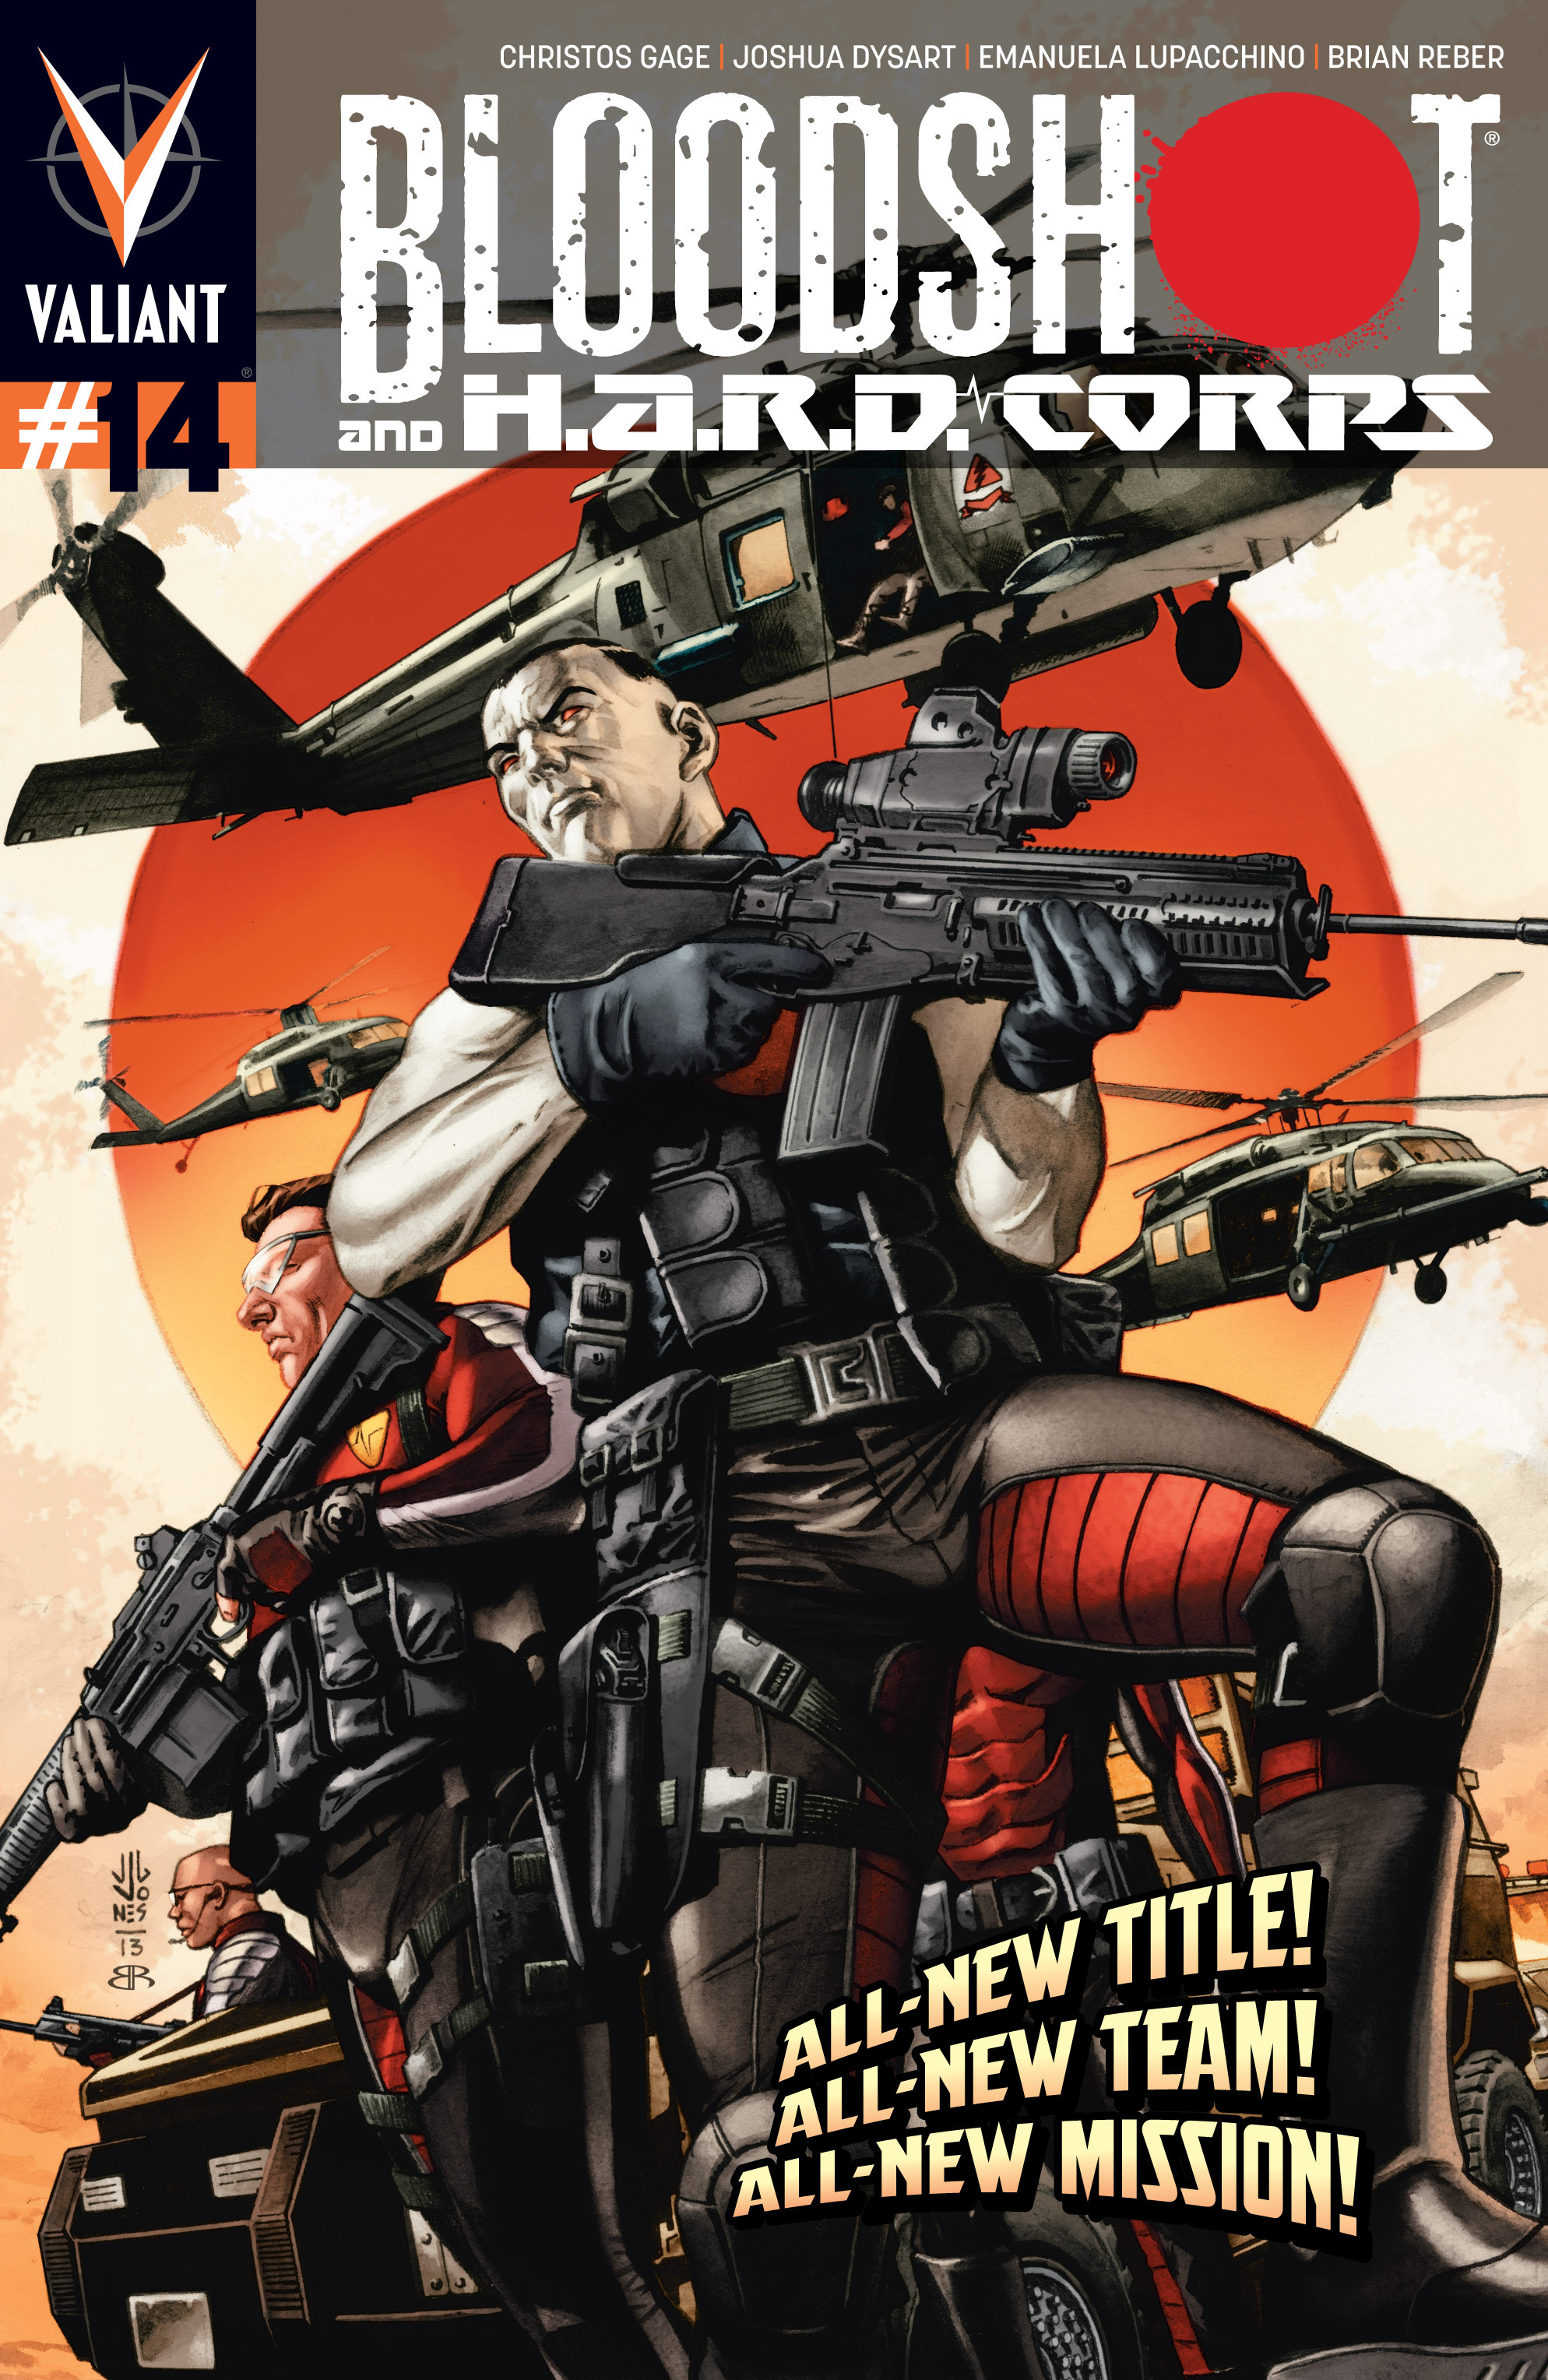 Read online Bloodshot and H.A.R.D.Corps comic -  Issue # TPB 4 - 6